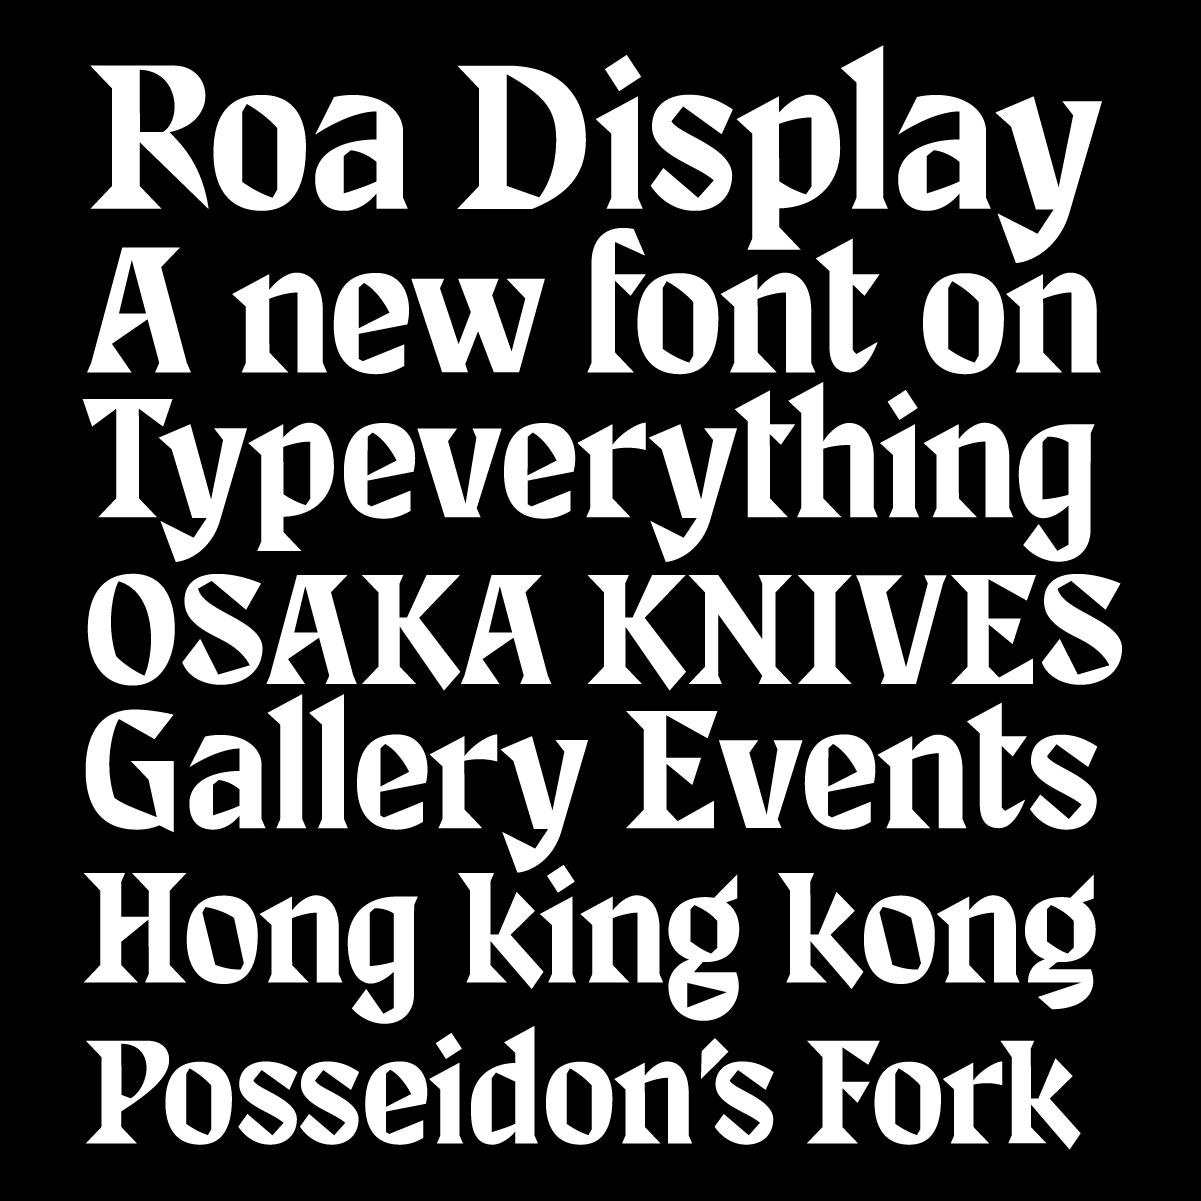 Roa Display, a new serif typeface designed by Andrei Robu for Typeverything.com